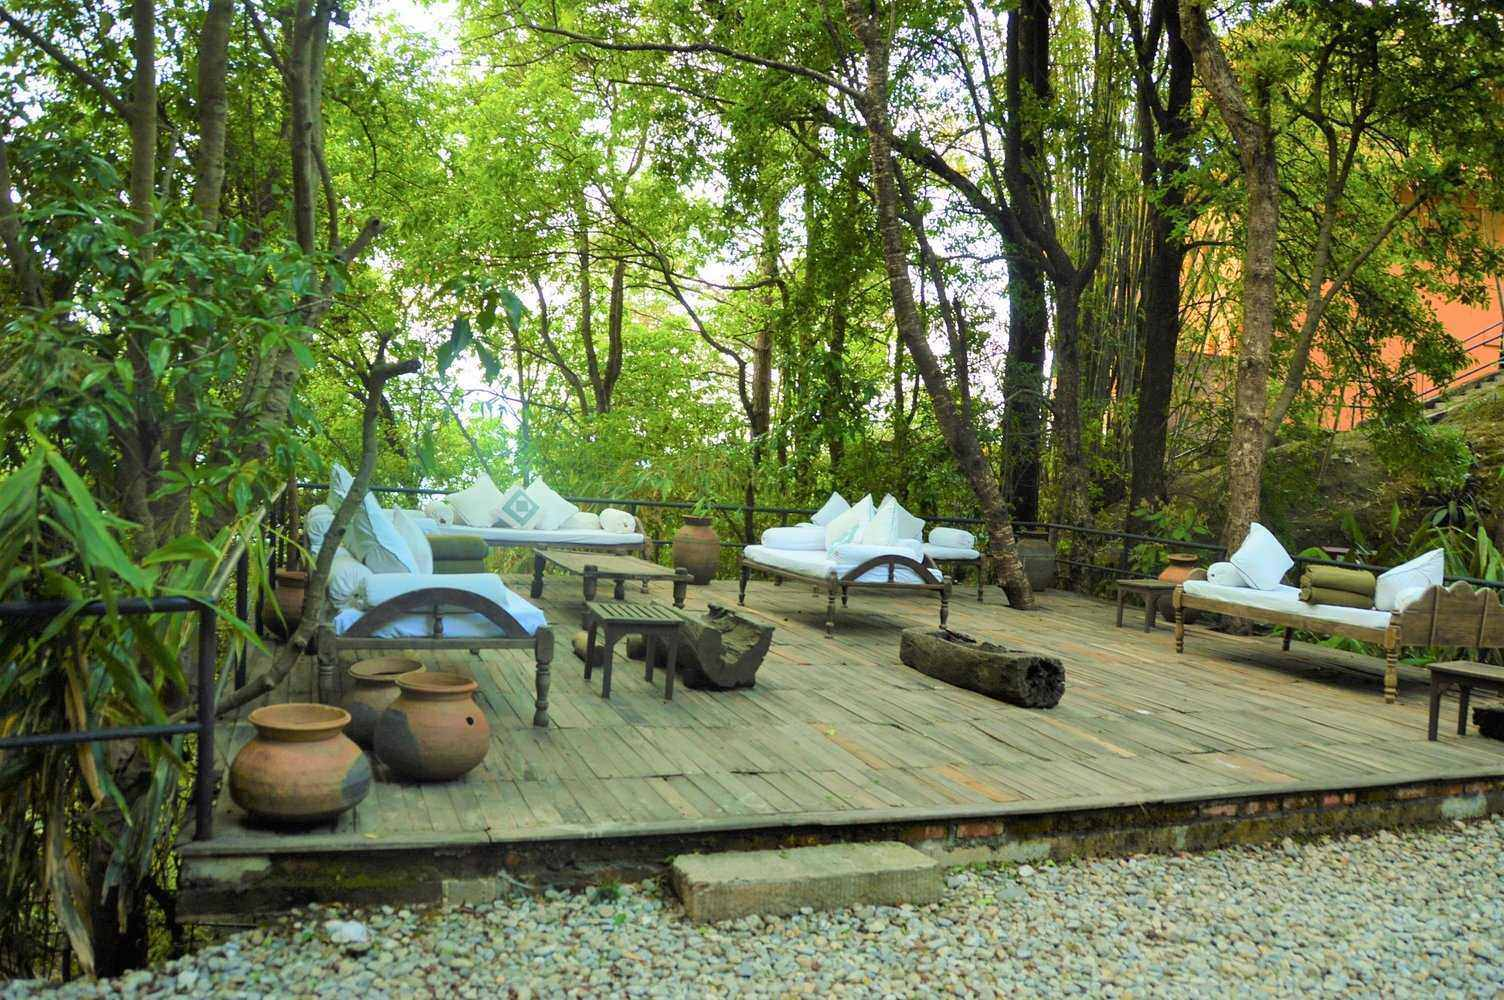 outdoor spa waiting area at dwarika's resort dhulikhel